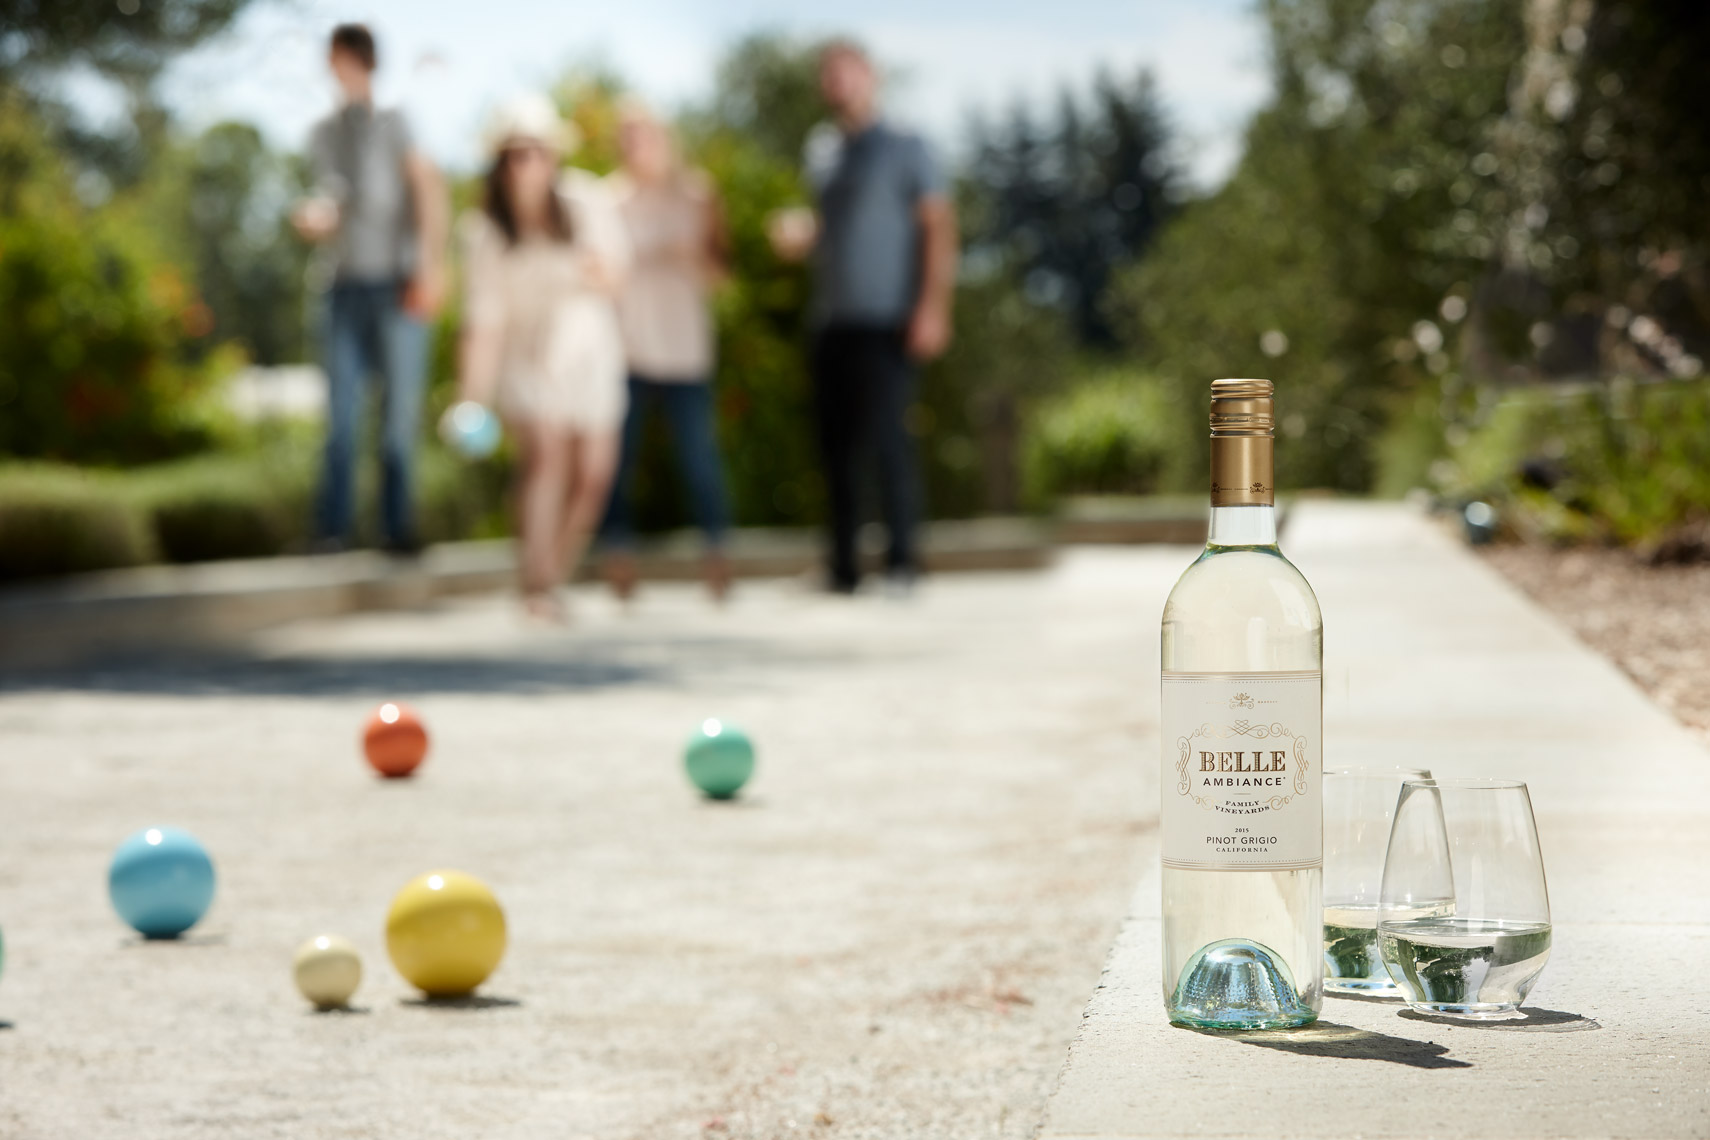 AlanCampbellPhotography, Bocce lifetyle game in wine country.